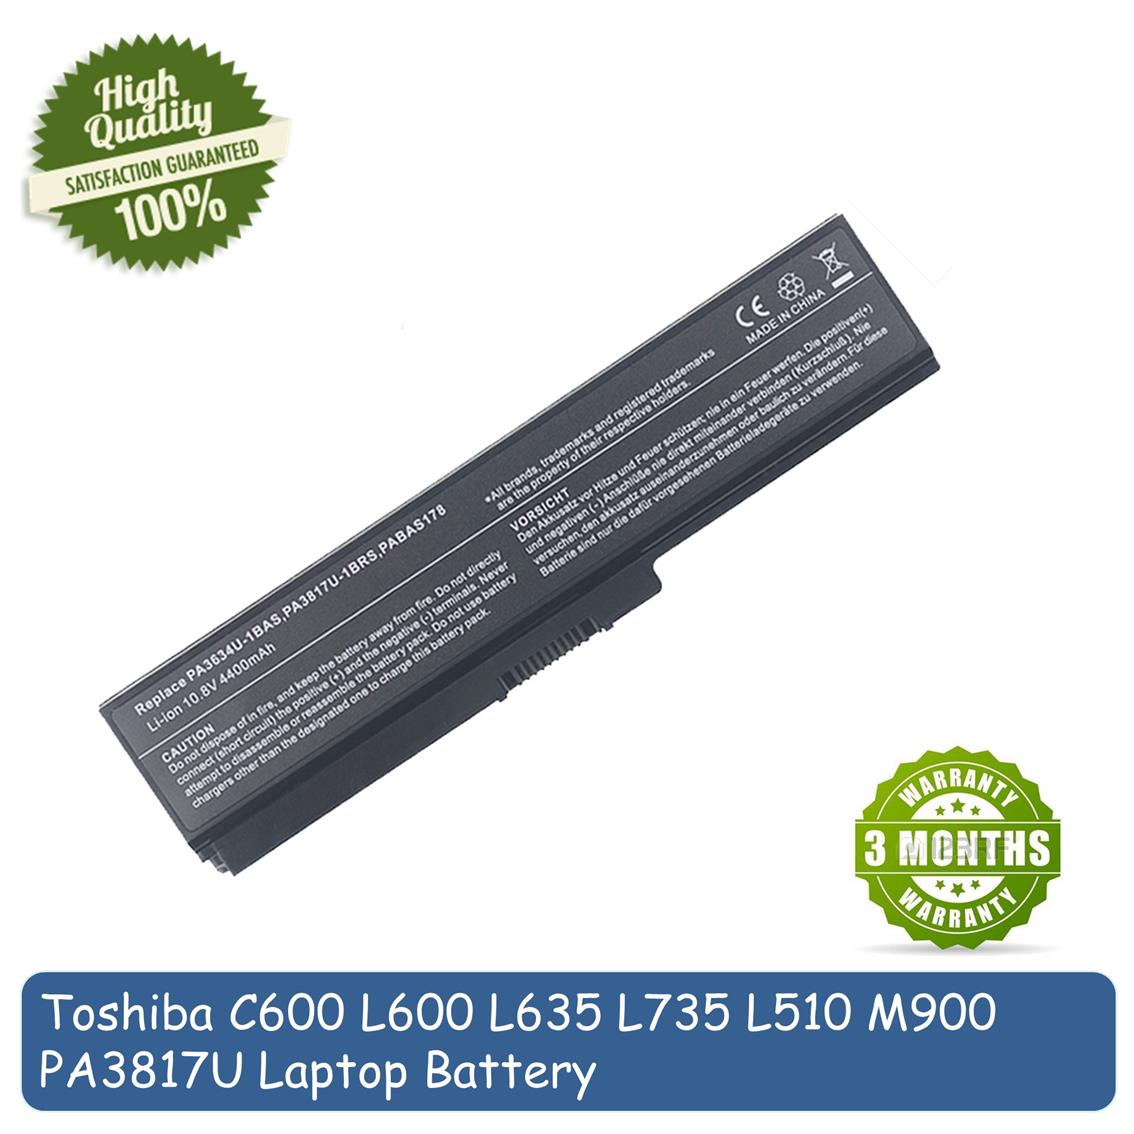 TOSHIBA Satellite L600 L600D L630 L630D L635 L640 L640D Laptop Battery